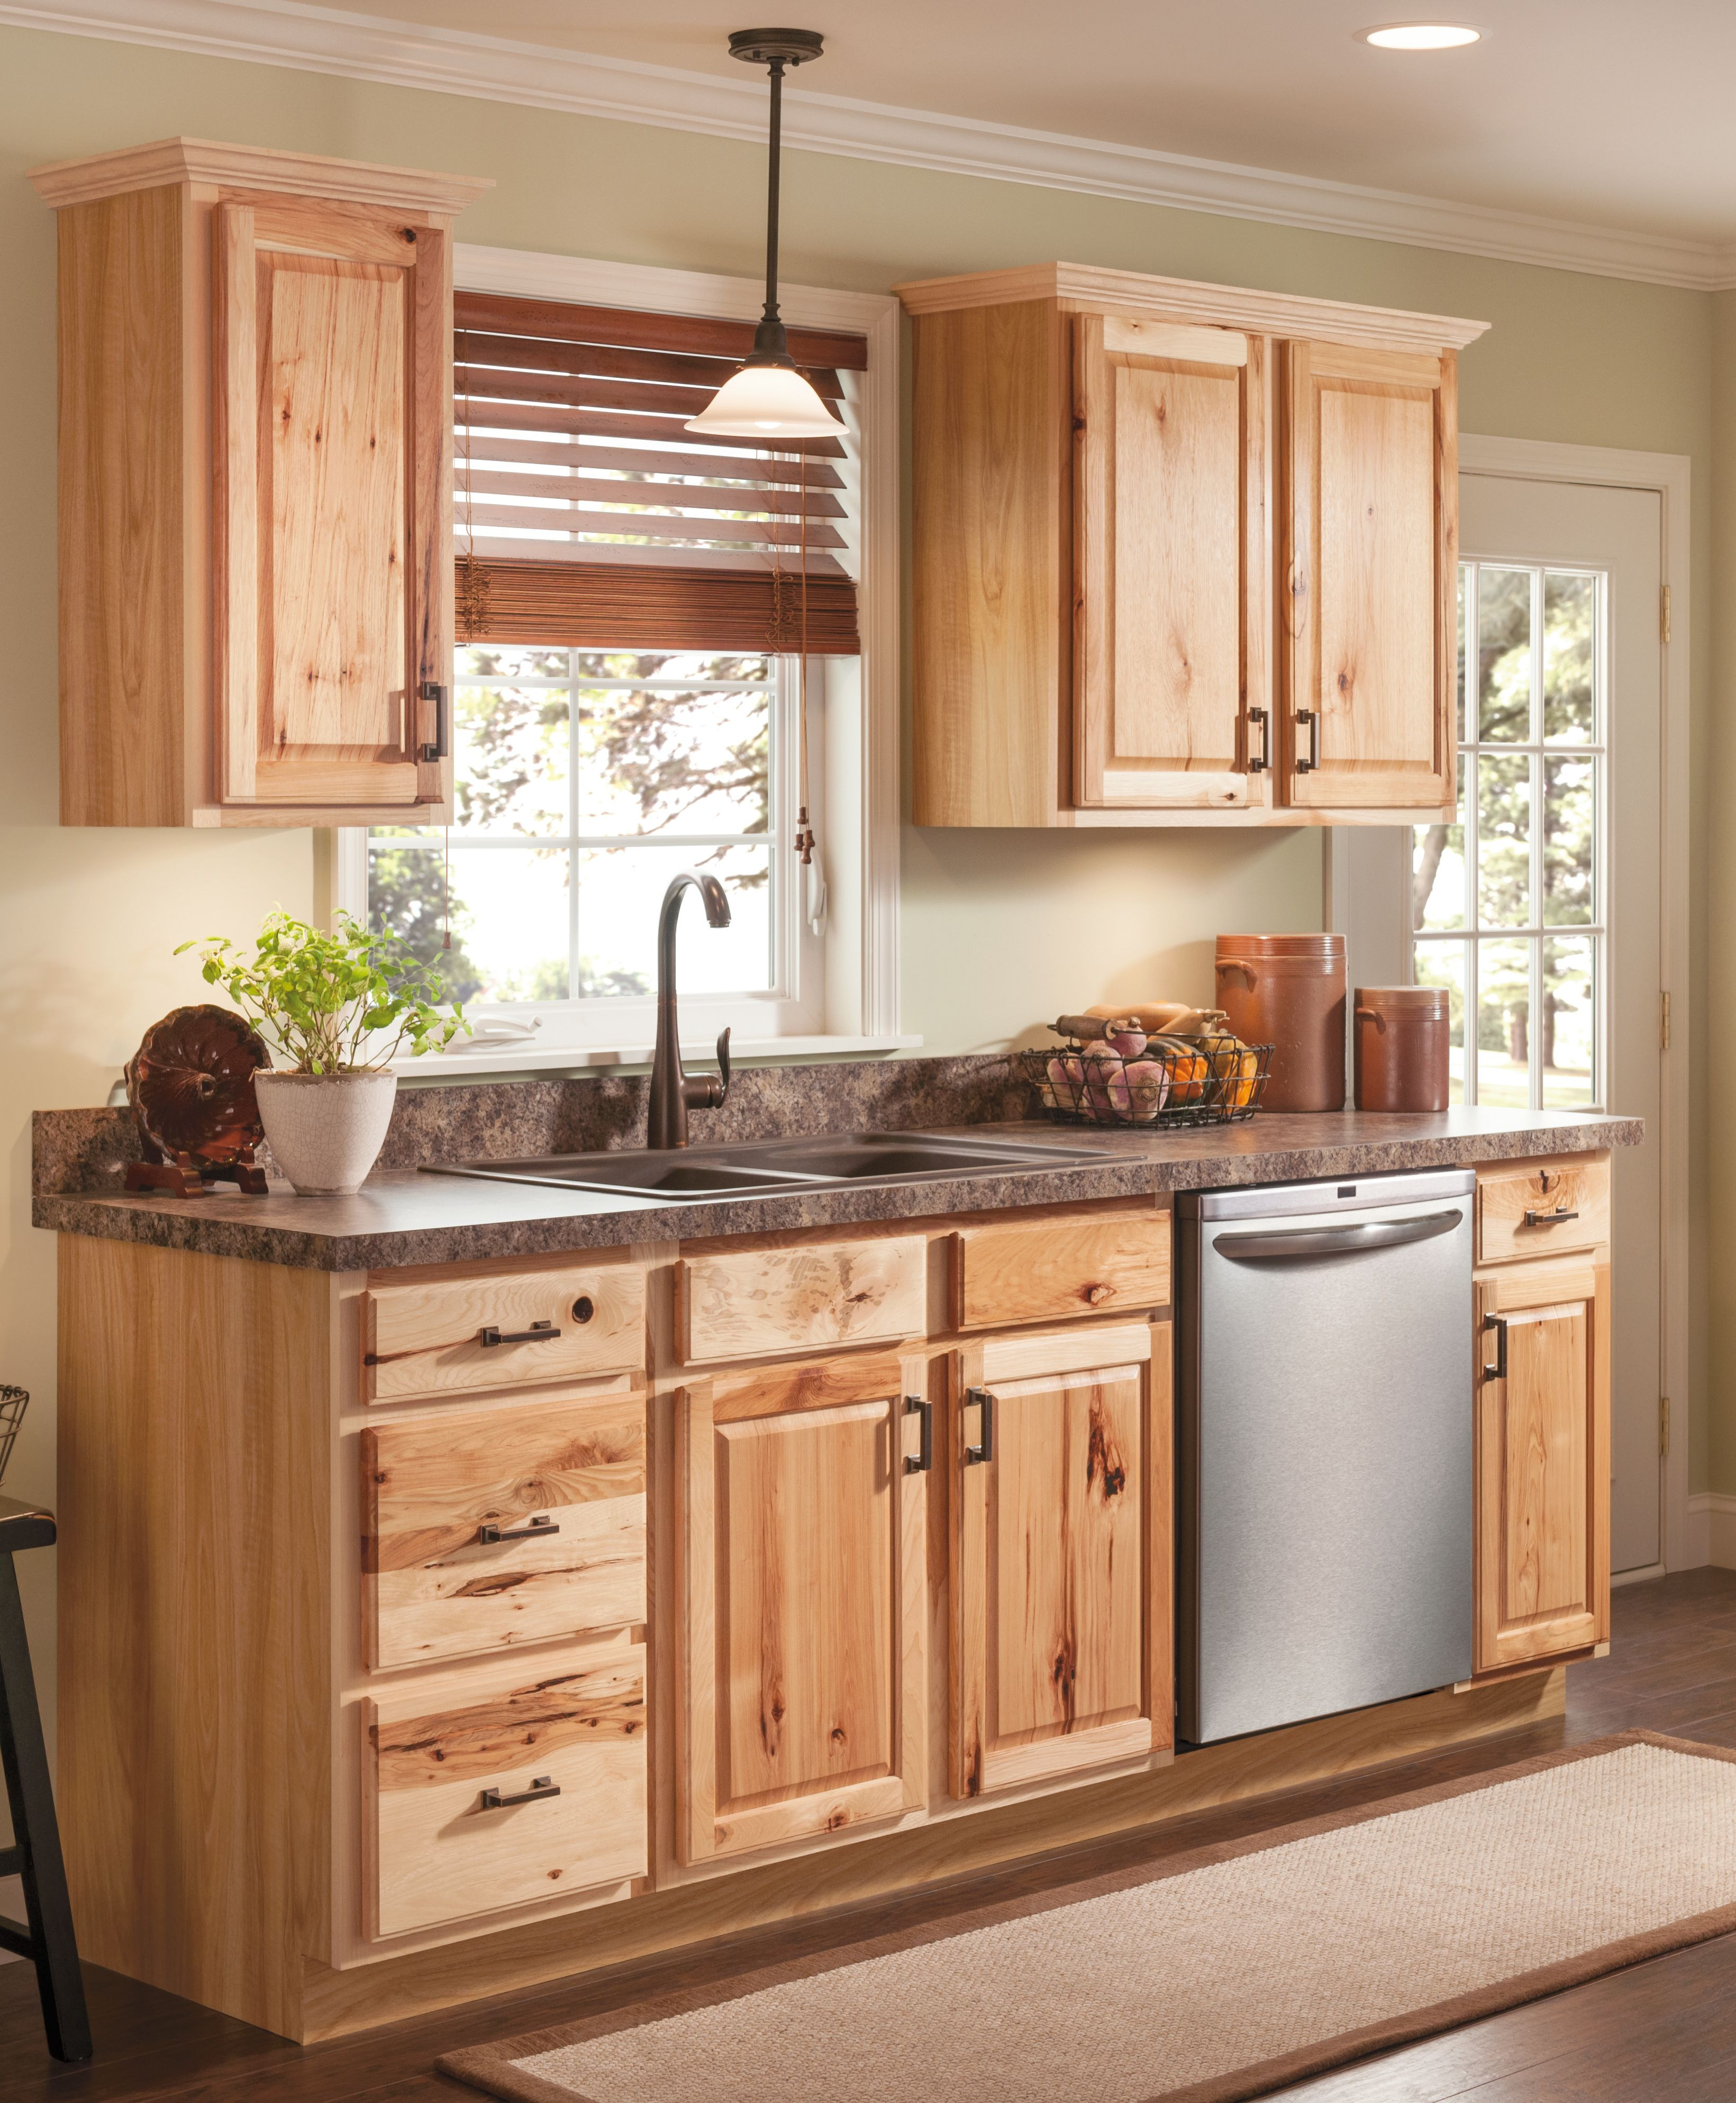 pin by kimberly cox on neat kitchen and dining ideas in rustic hickory kitchen cabinet doors l d5